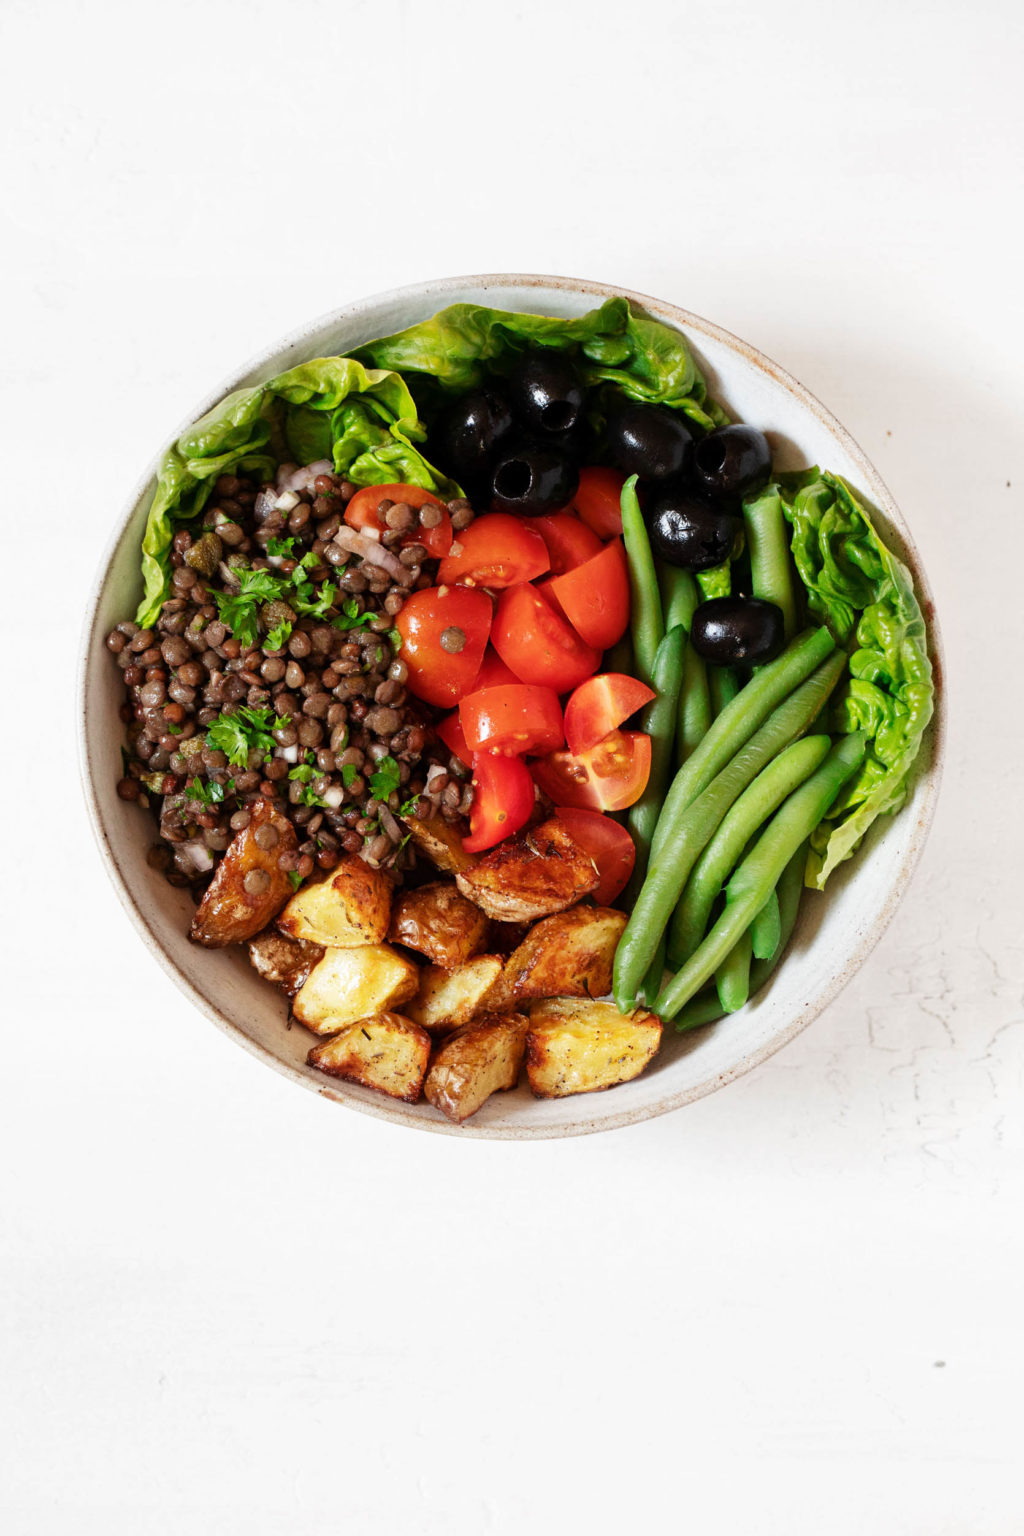 An overhead image of a bowl of plant-based salad, which has been made with green beans, tomatoes, olives, and butter lettuces.